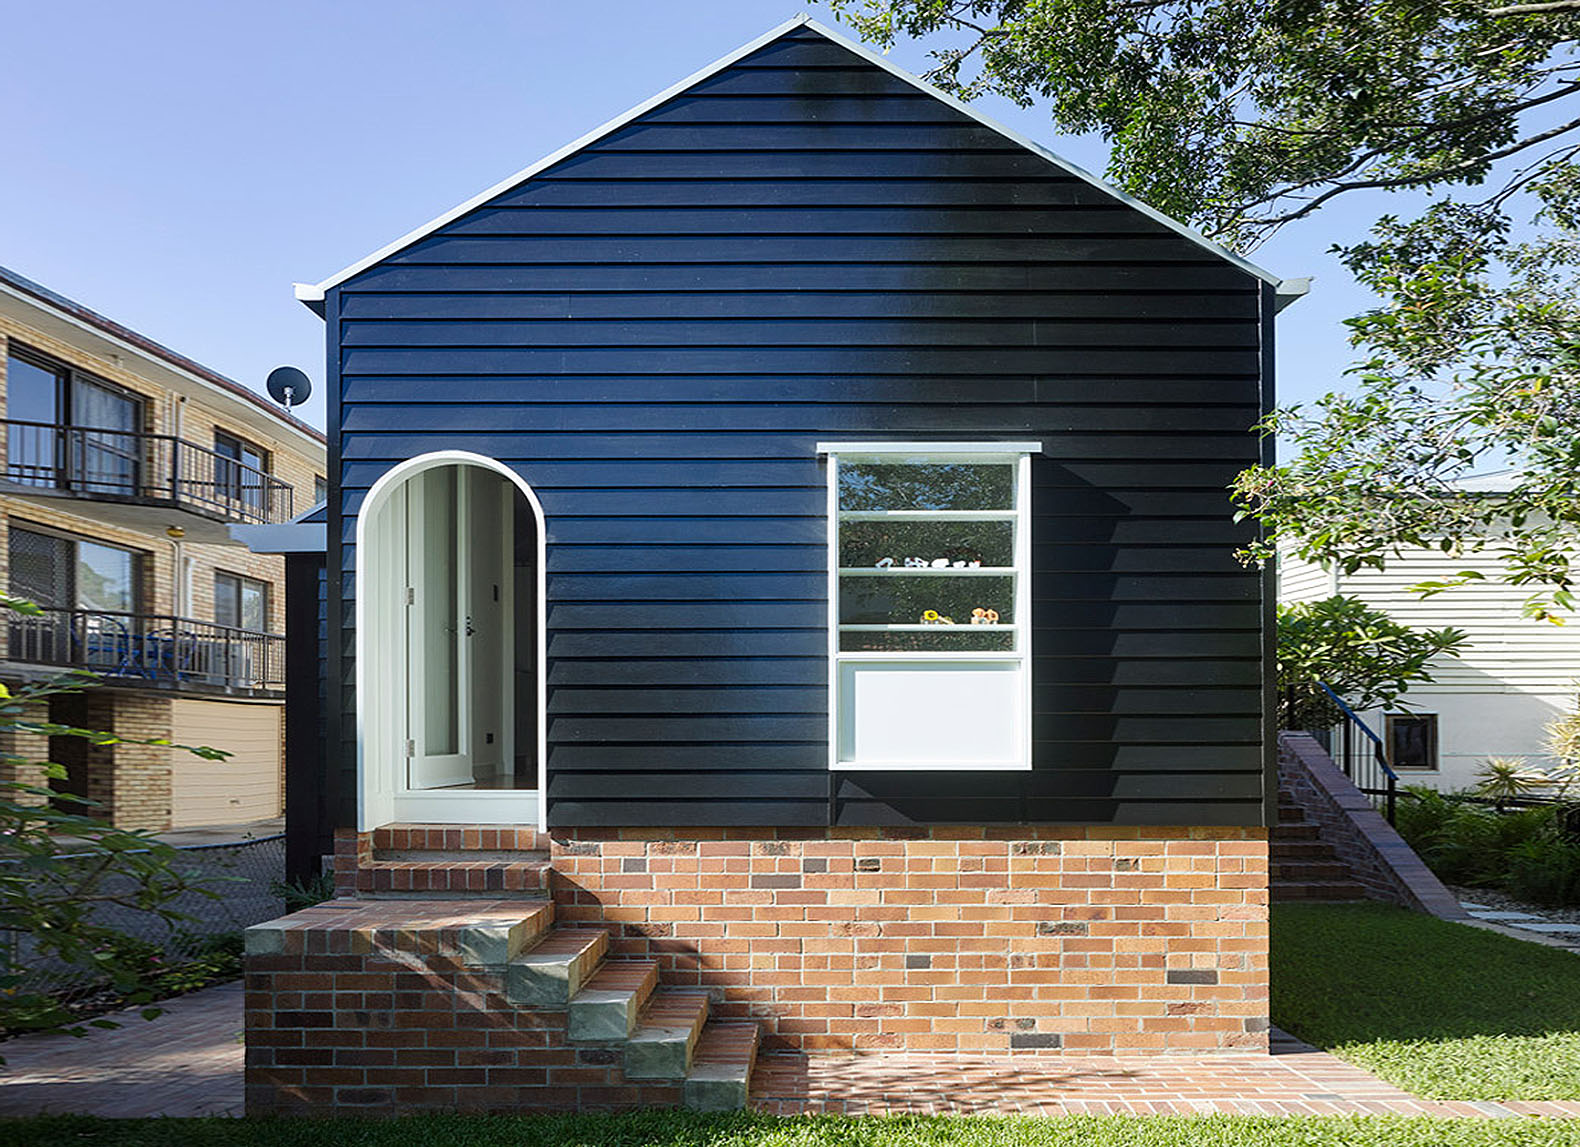 Pre War Queensland Bungalow Gets A Modern Makeover And Cottage Like Extension